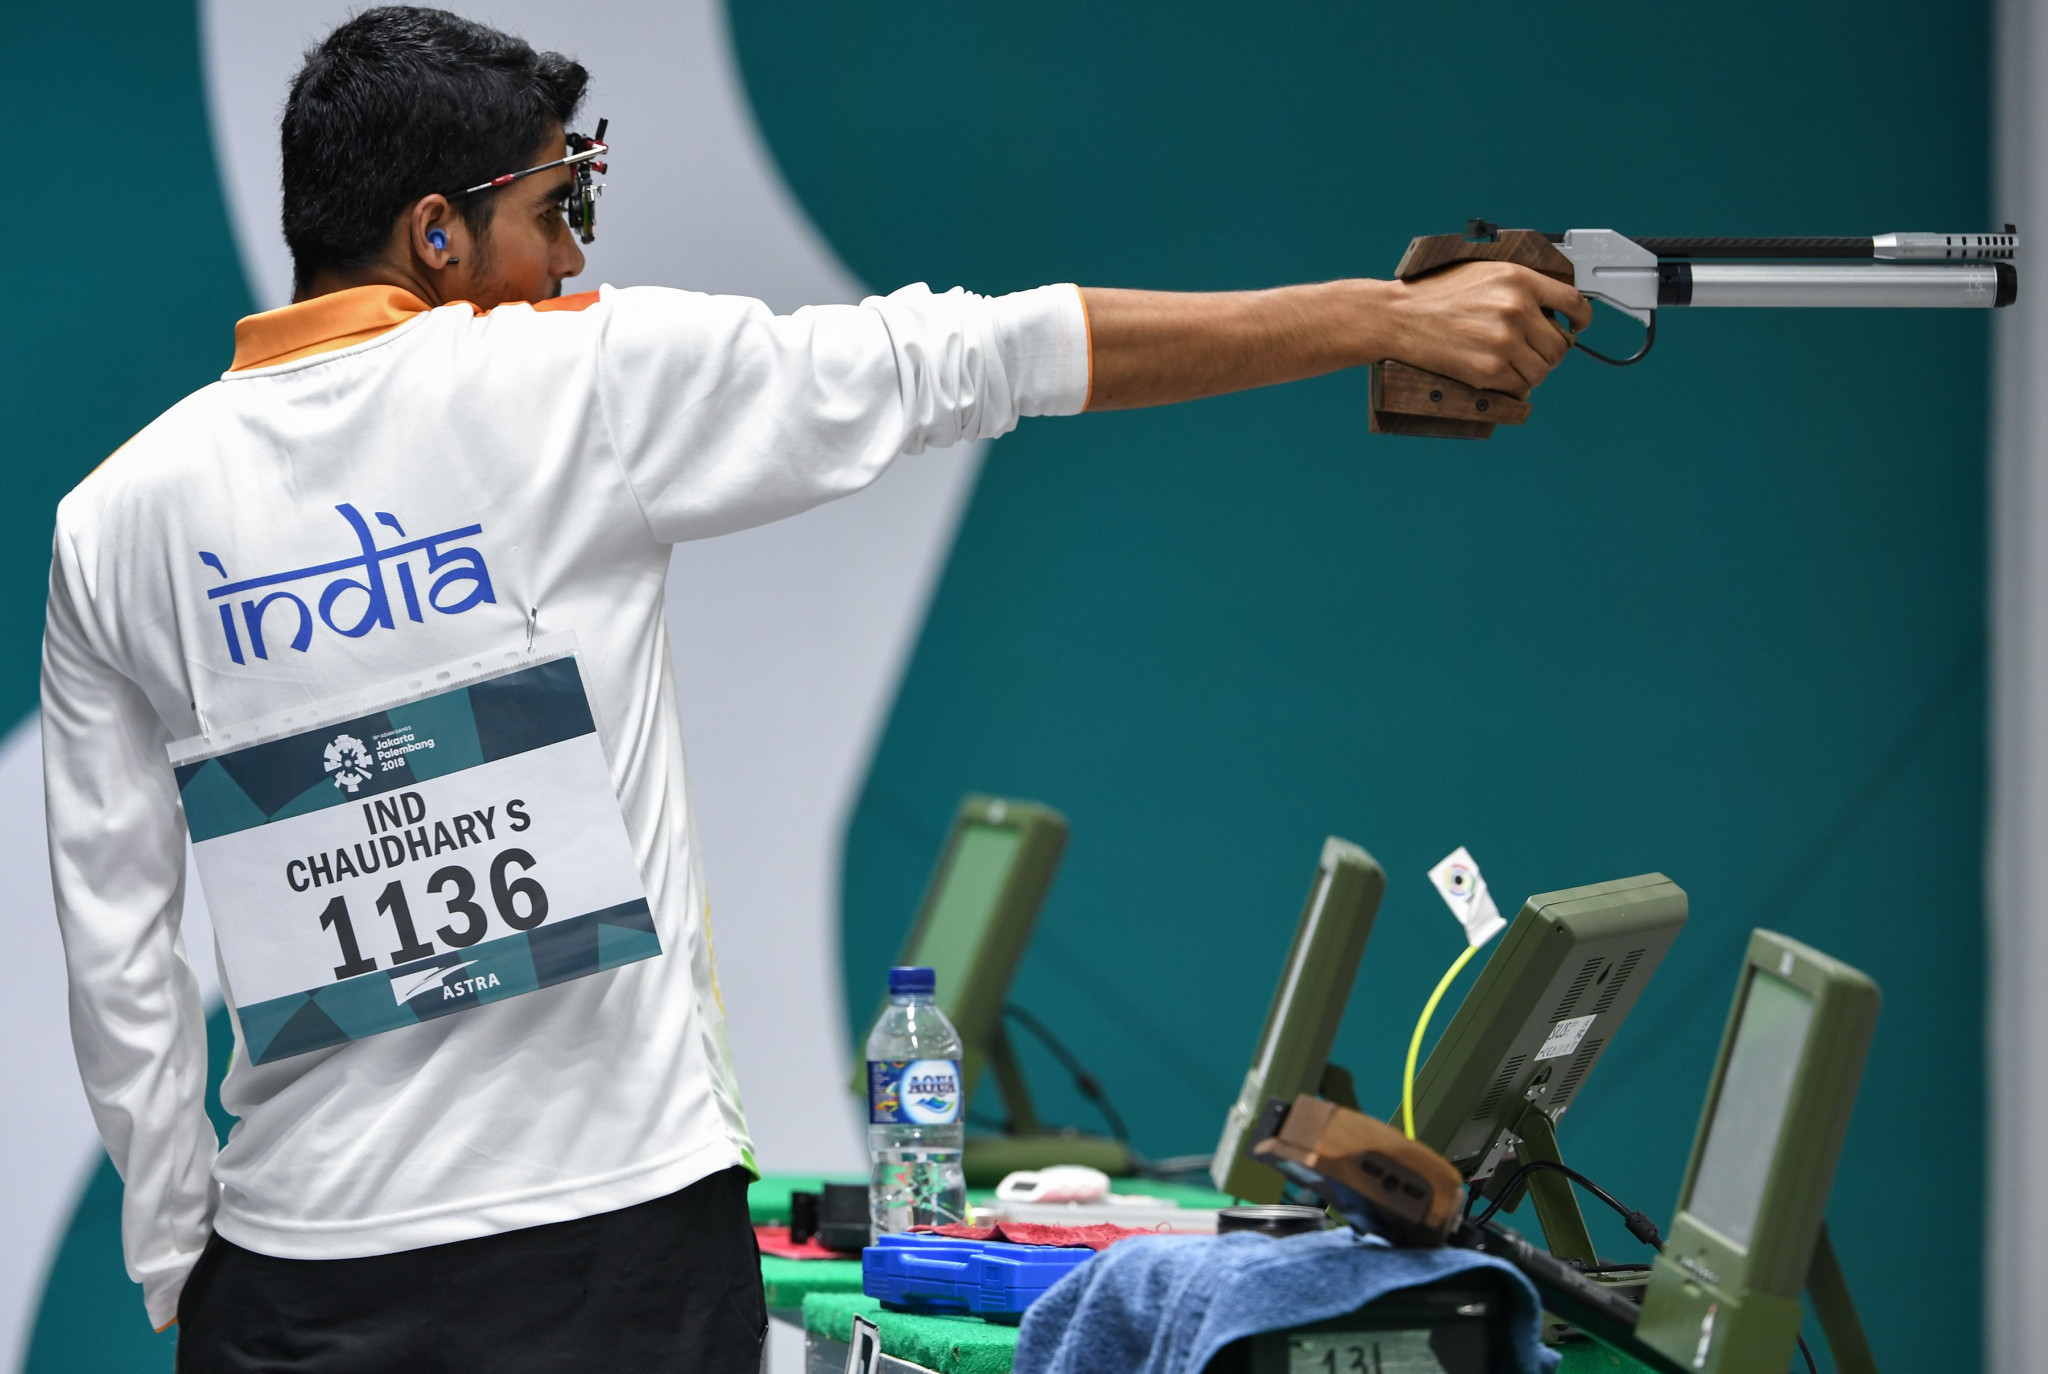 Indian teenager Saurabh Chaudhary produced a superb display to win the men's 10 metres air pistol gold medal ©Getty Images